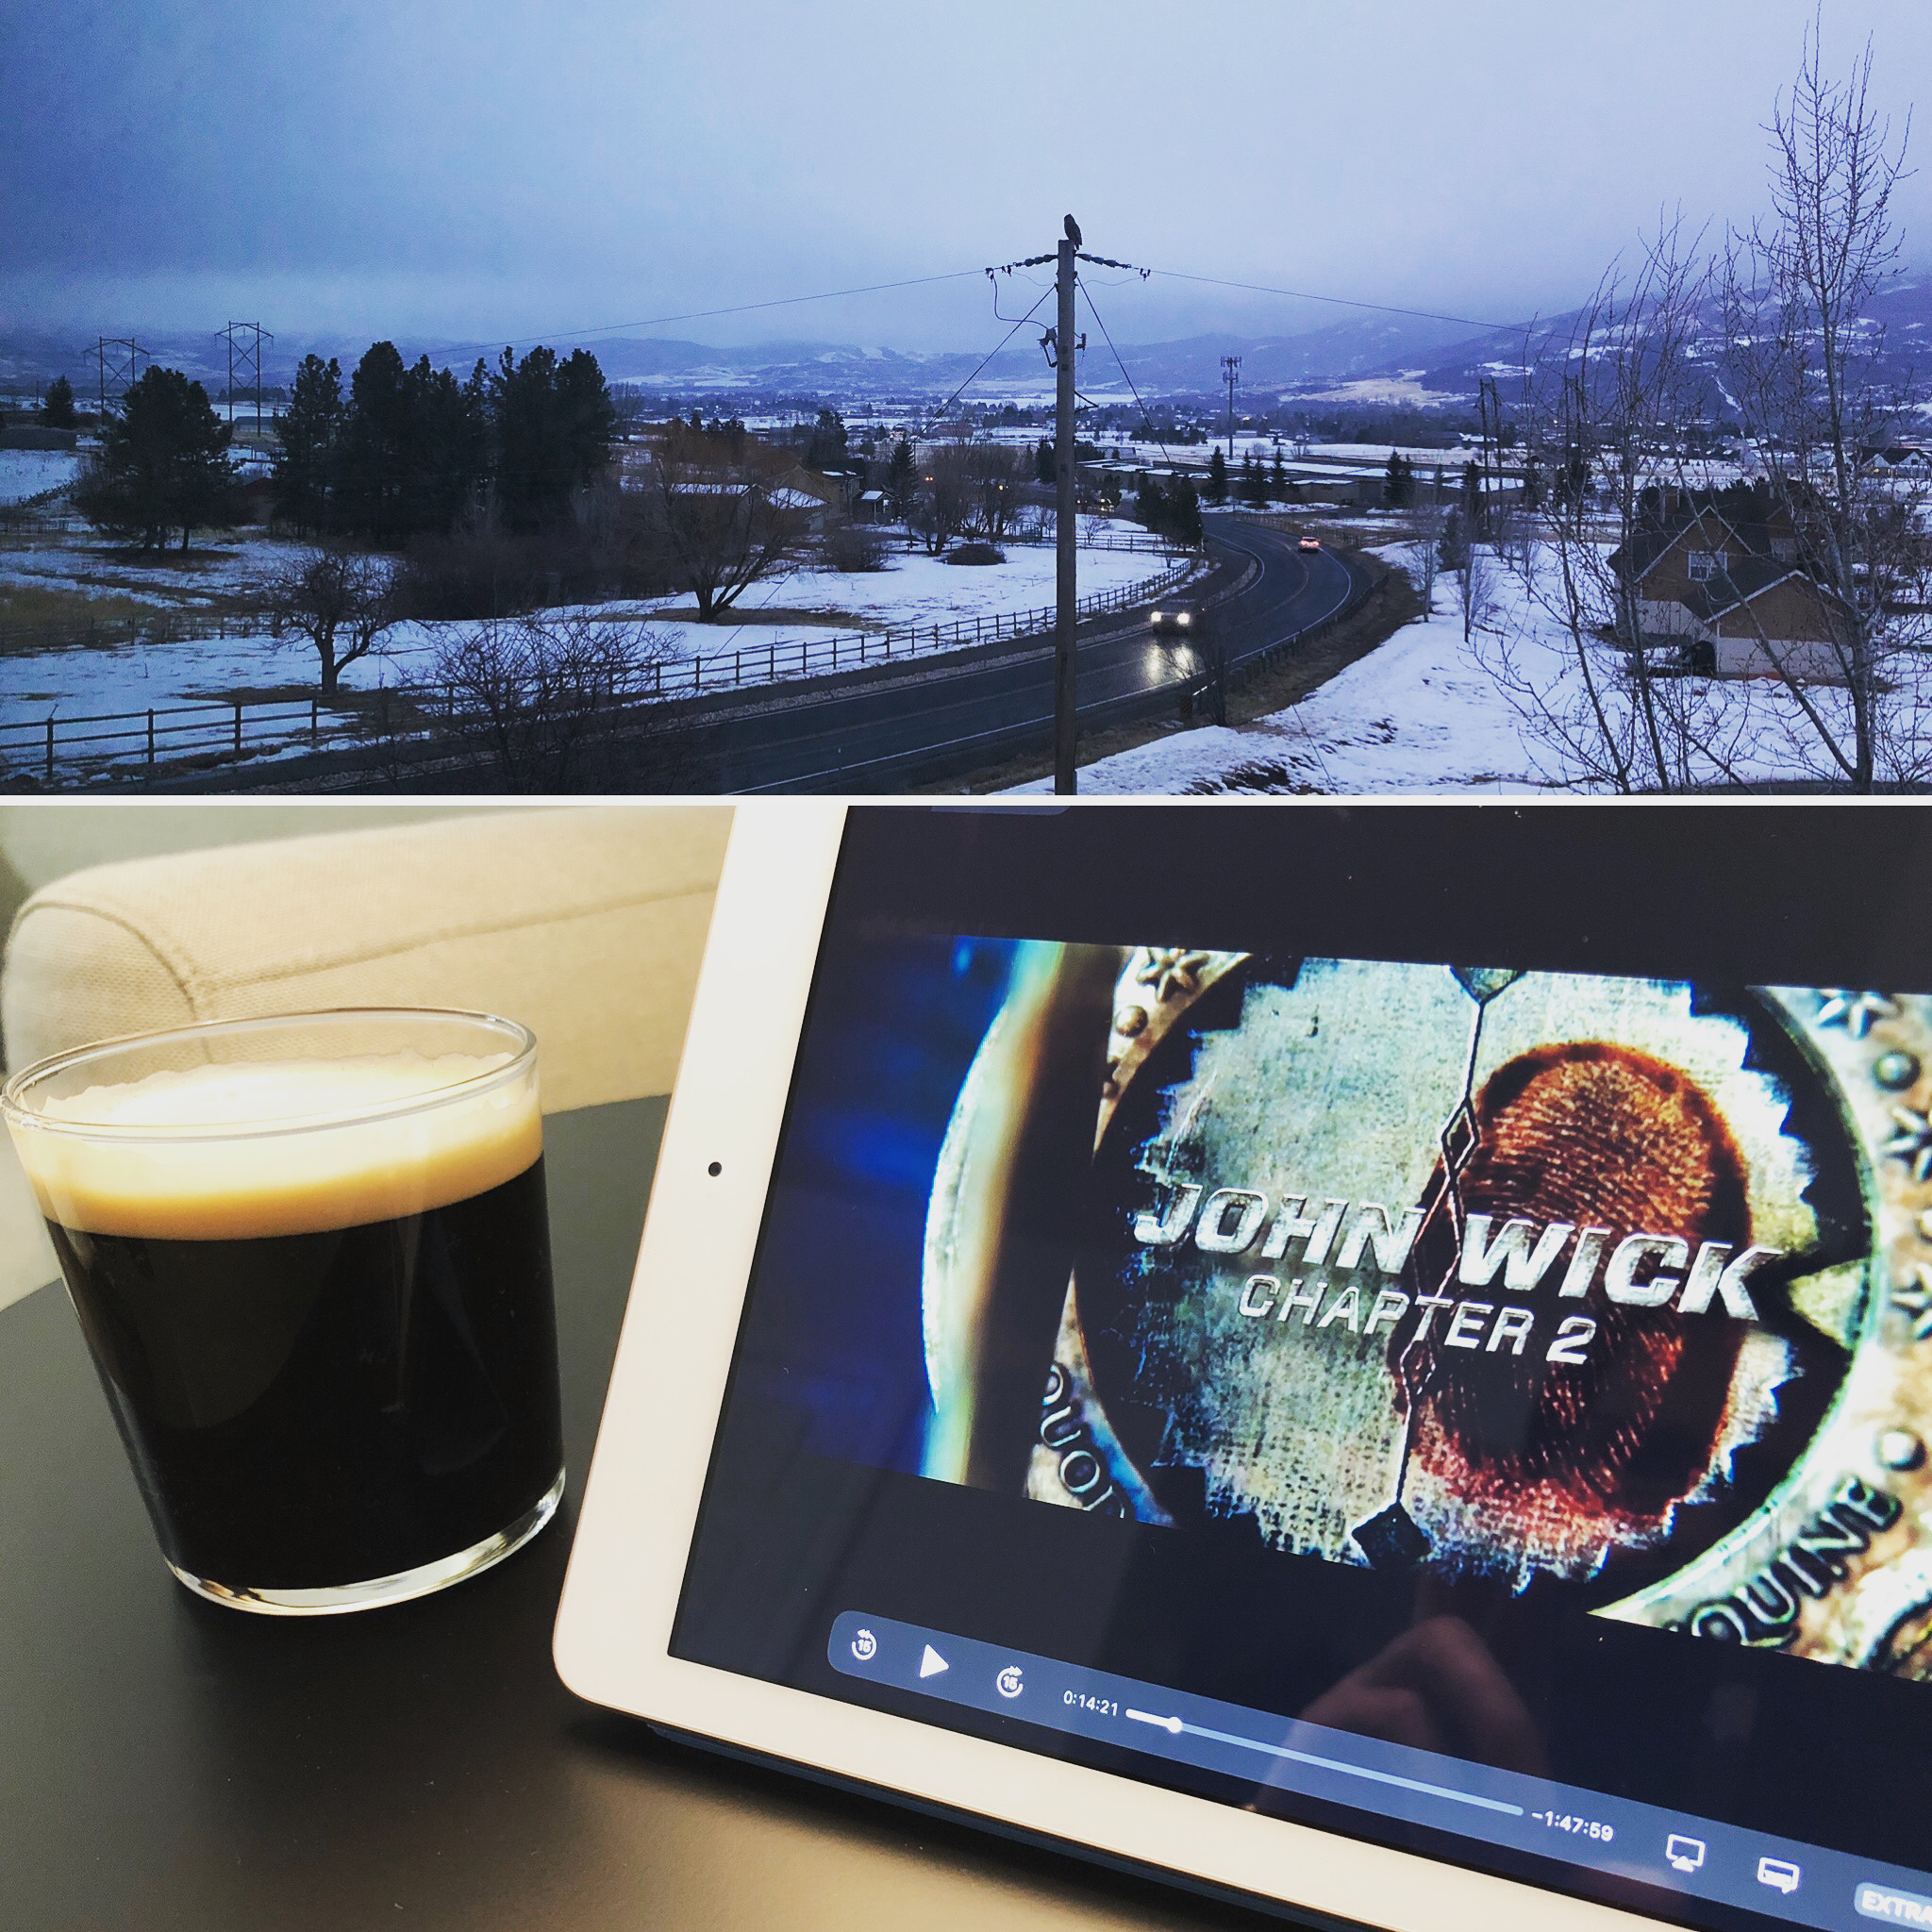 Snow clouds settling over a mountain landscape, and a photo of a dark beer beside an iPad playing John Wick 2